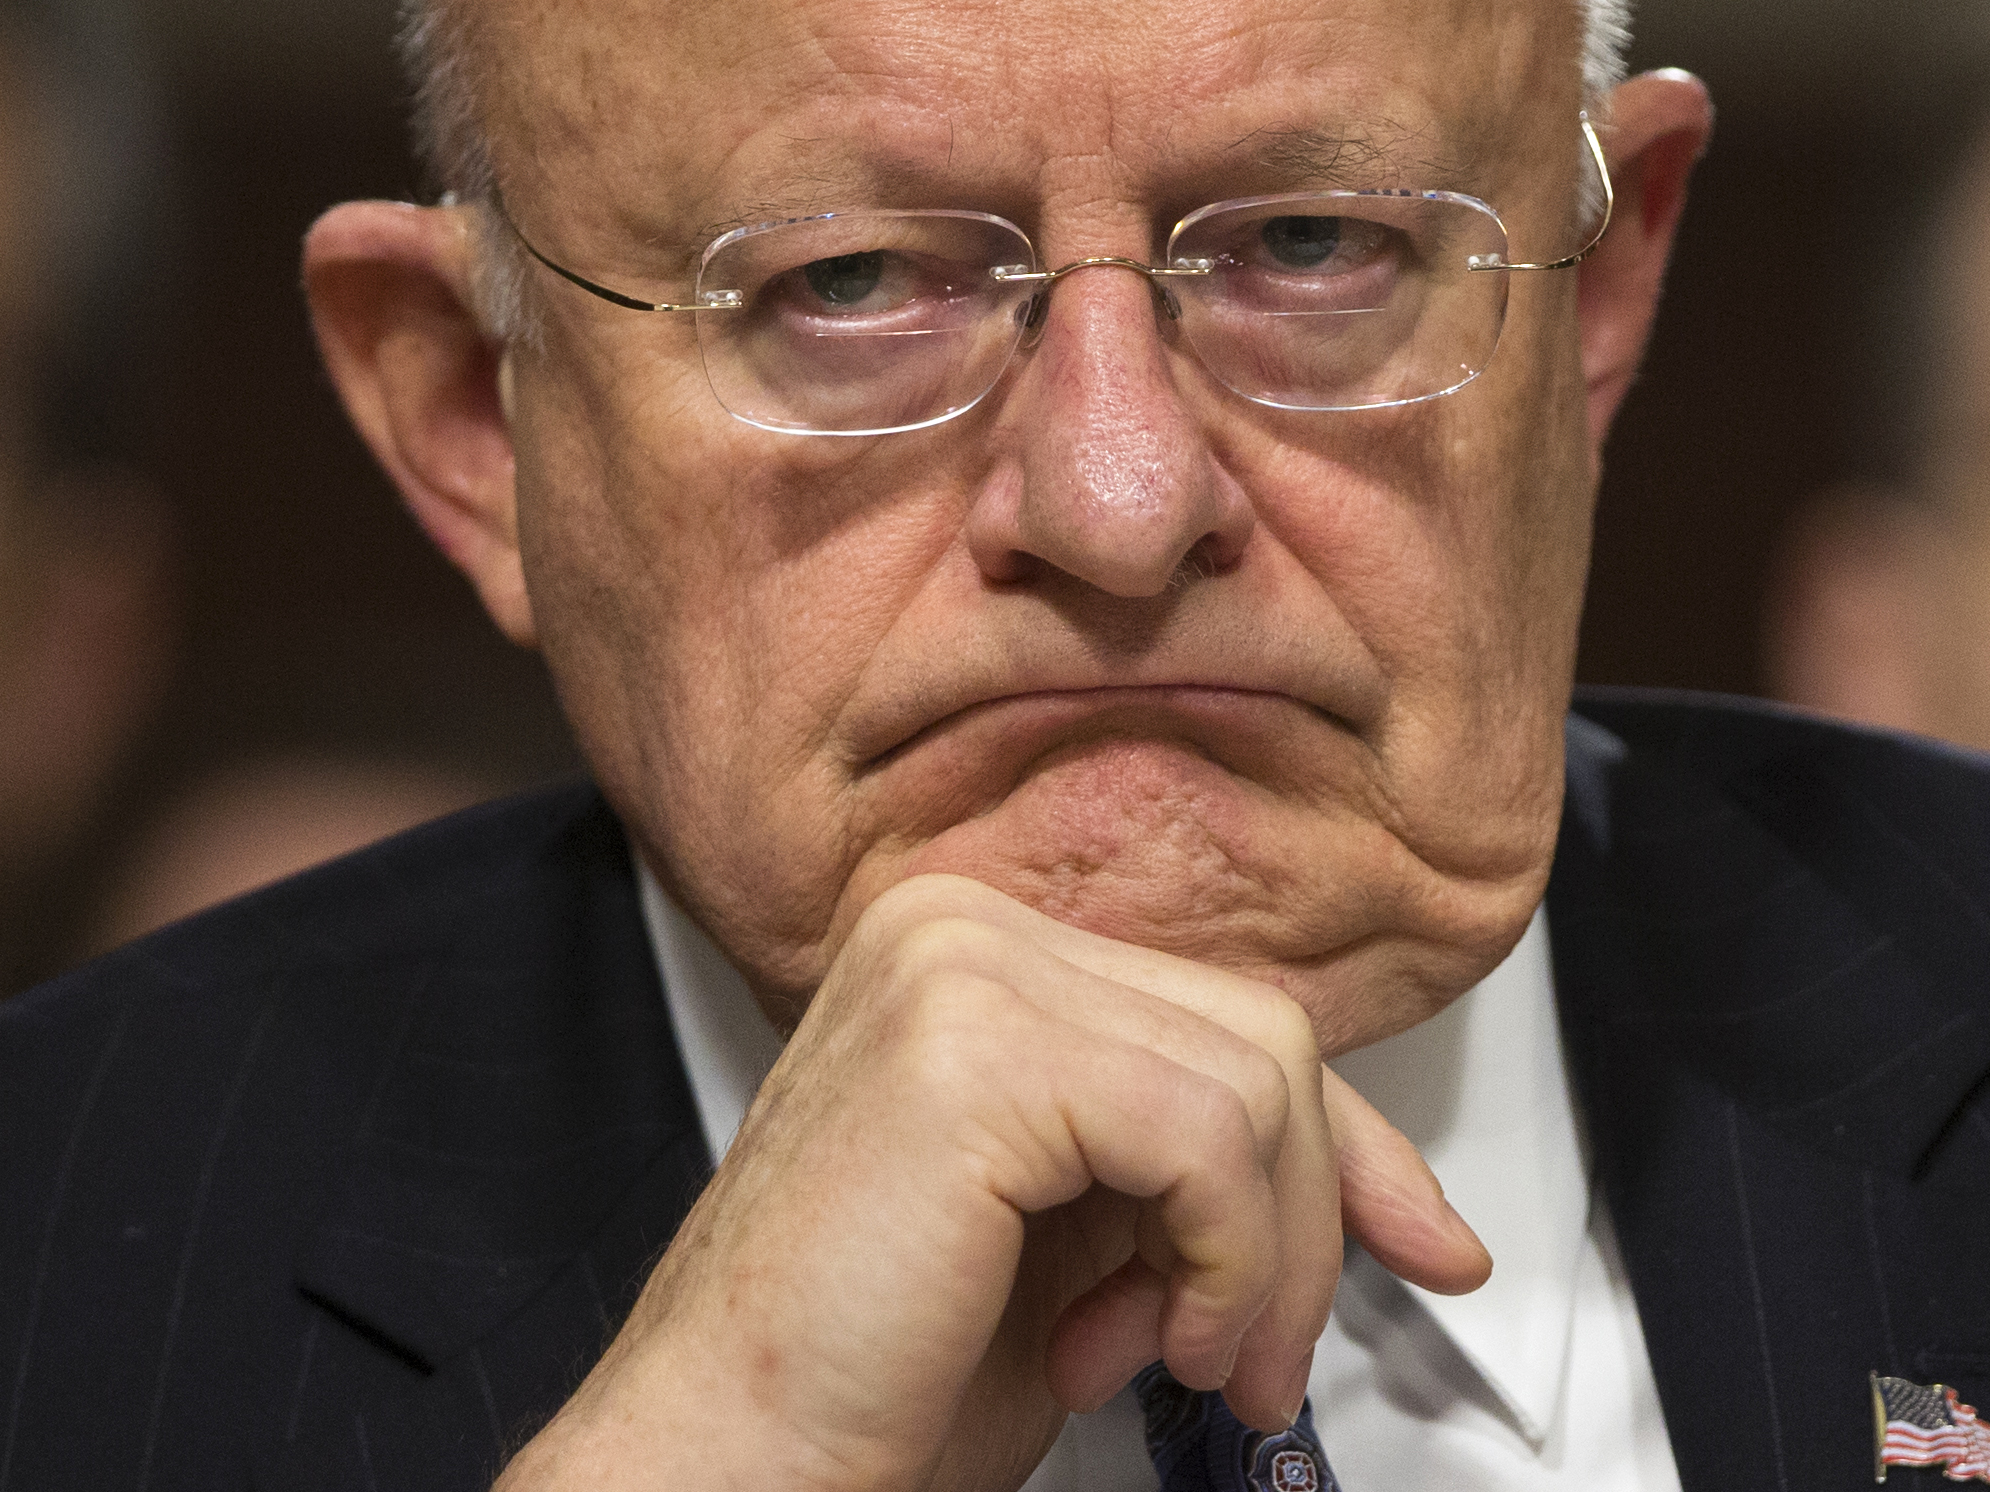 Former Director of National Intelligence James Clapper has been making public appearances all week as part of the tour for his new book